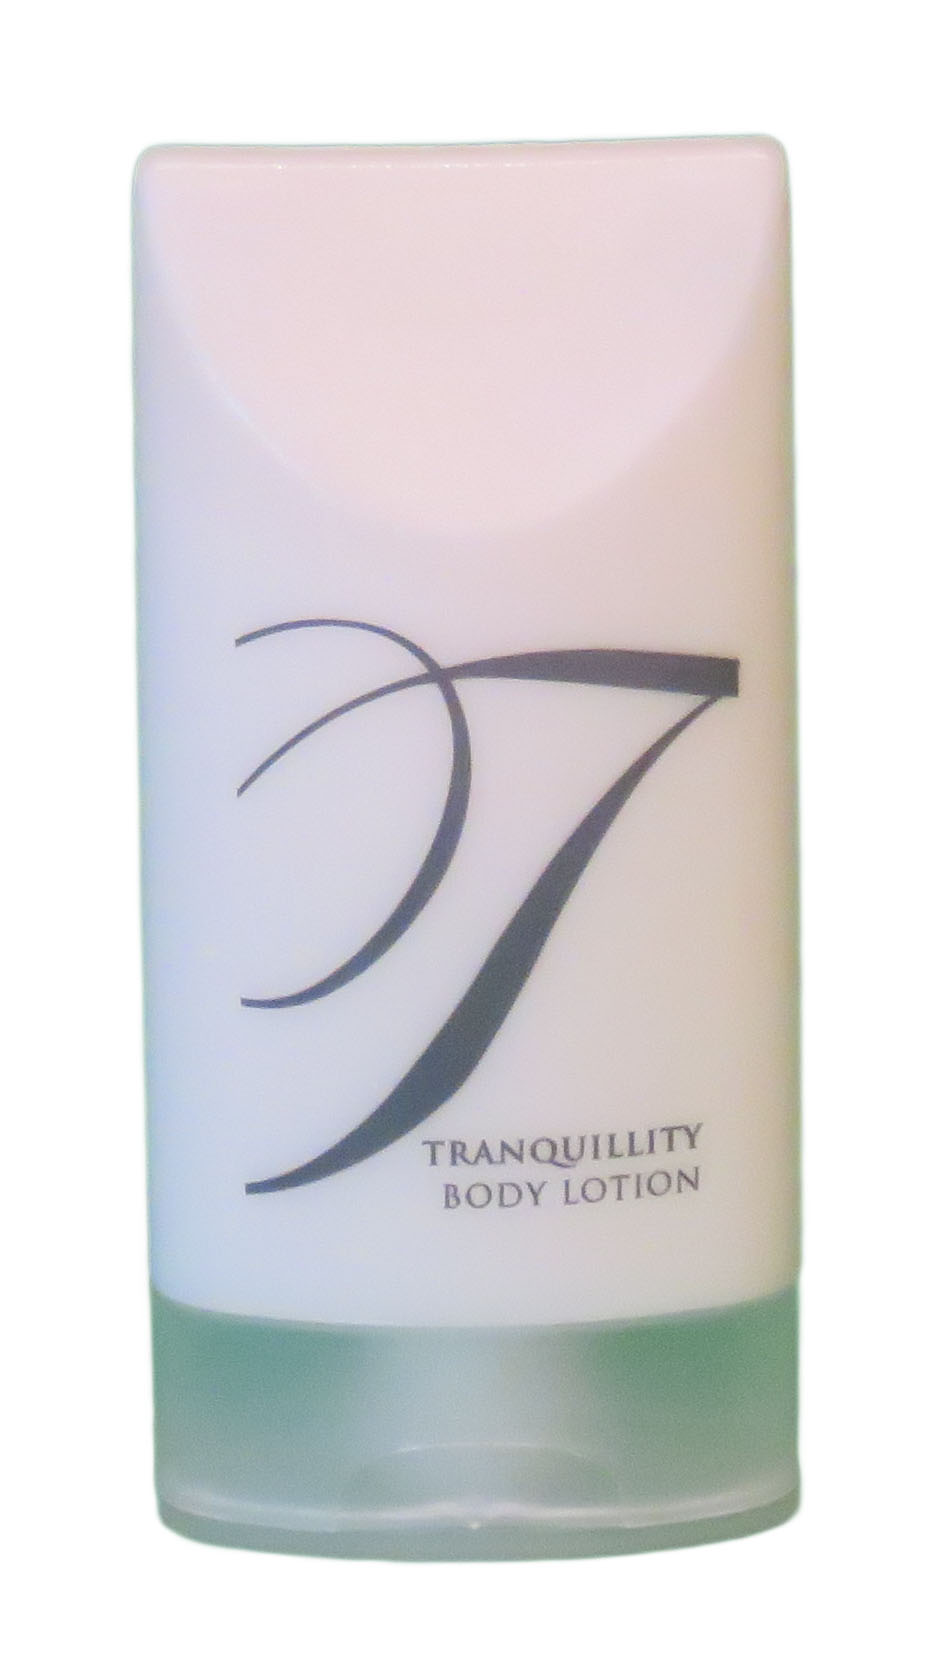 Tranquillity Hotel Body Lotion